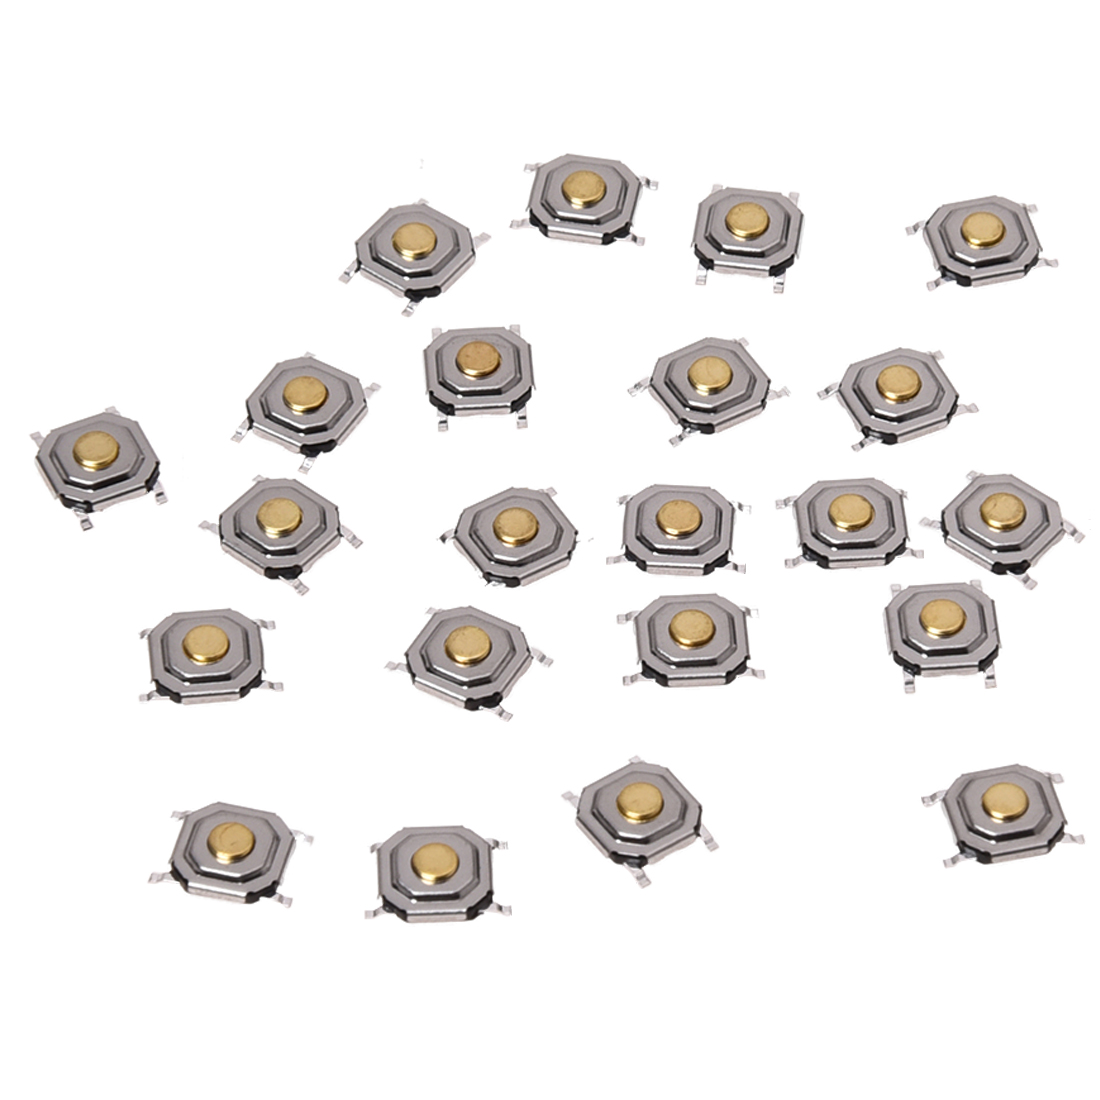 22pcs 4x4x1 5mm Smt Smd Momentary Tact Tactile Push Button